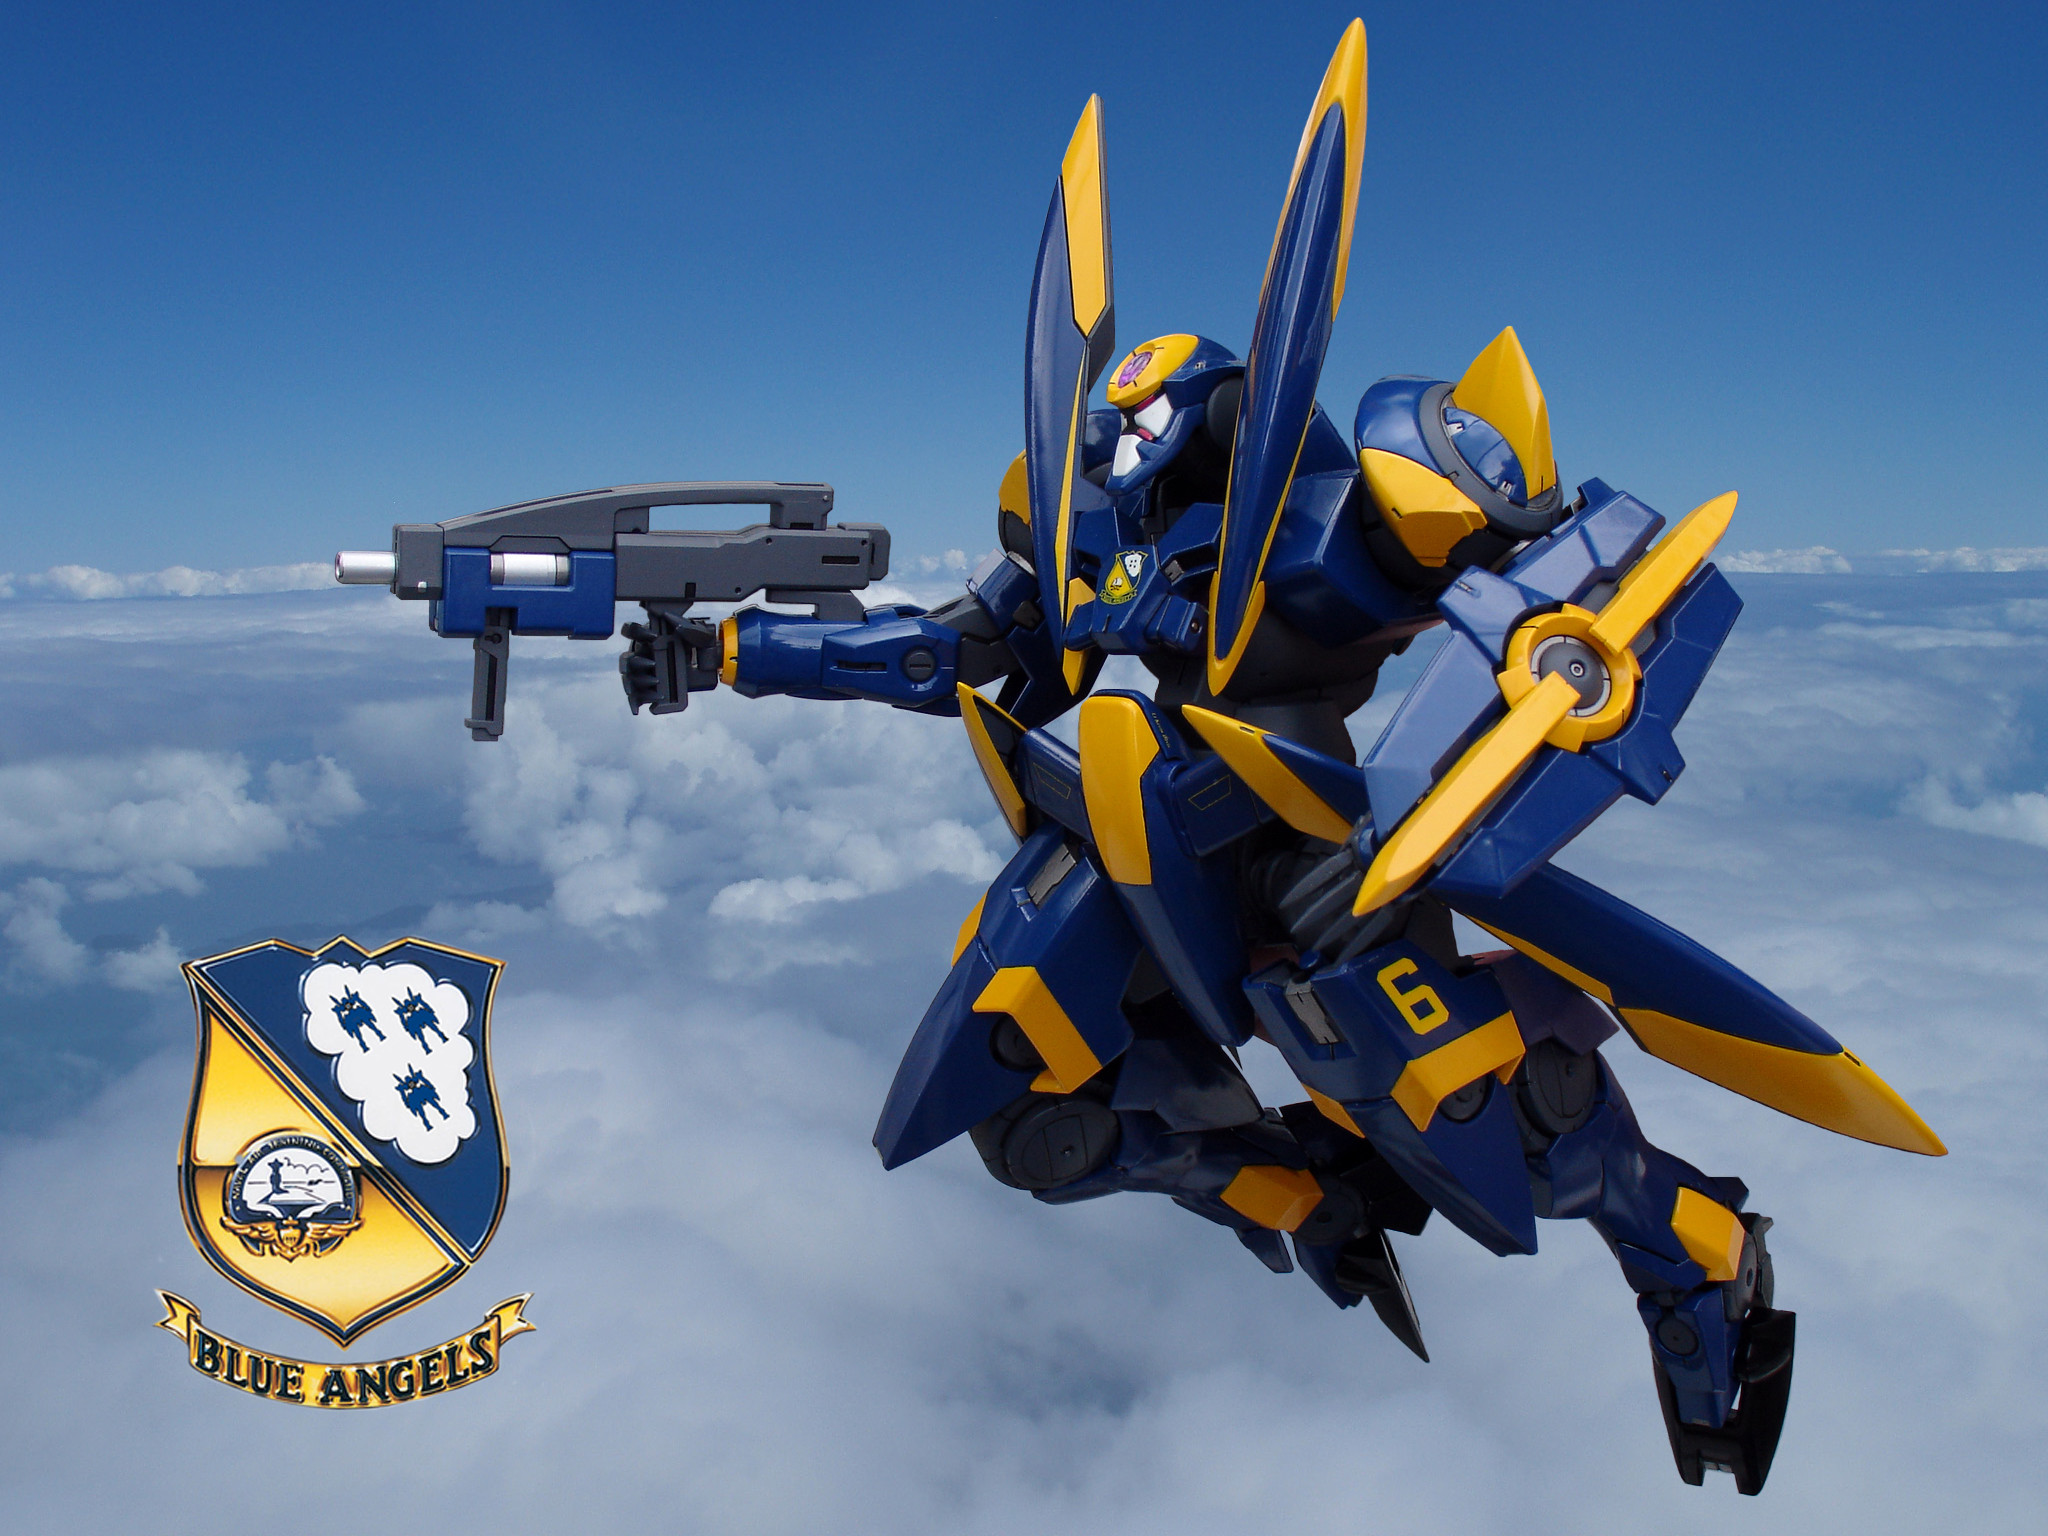 2048x1536 GN-X - Blue Angels 2320 version.